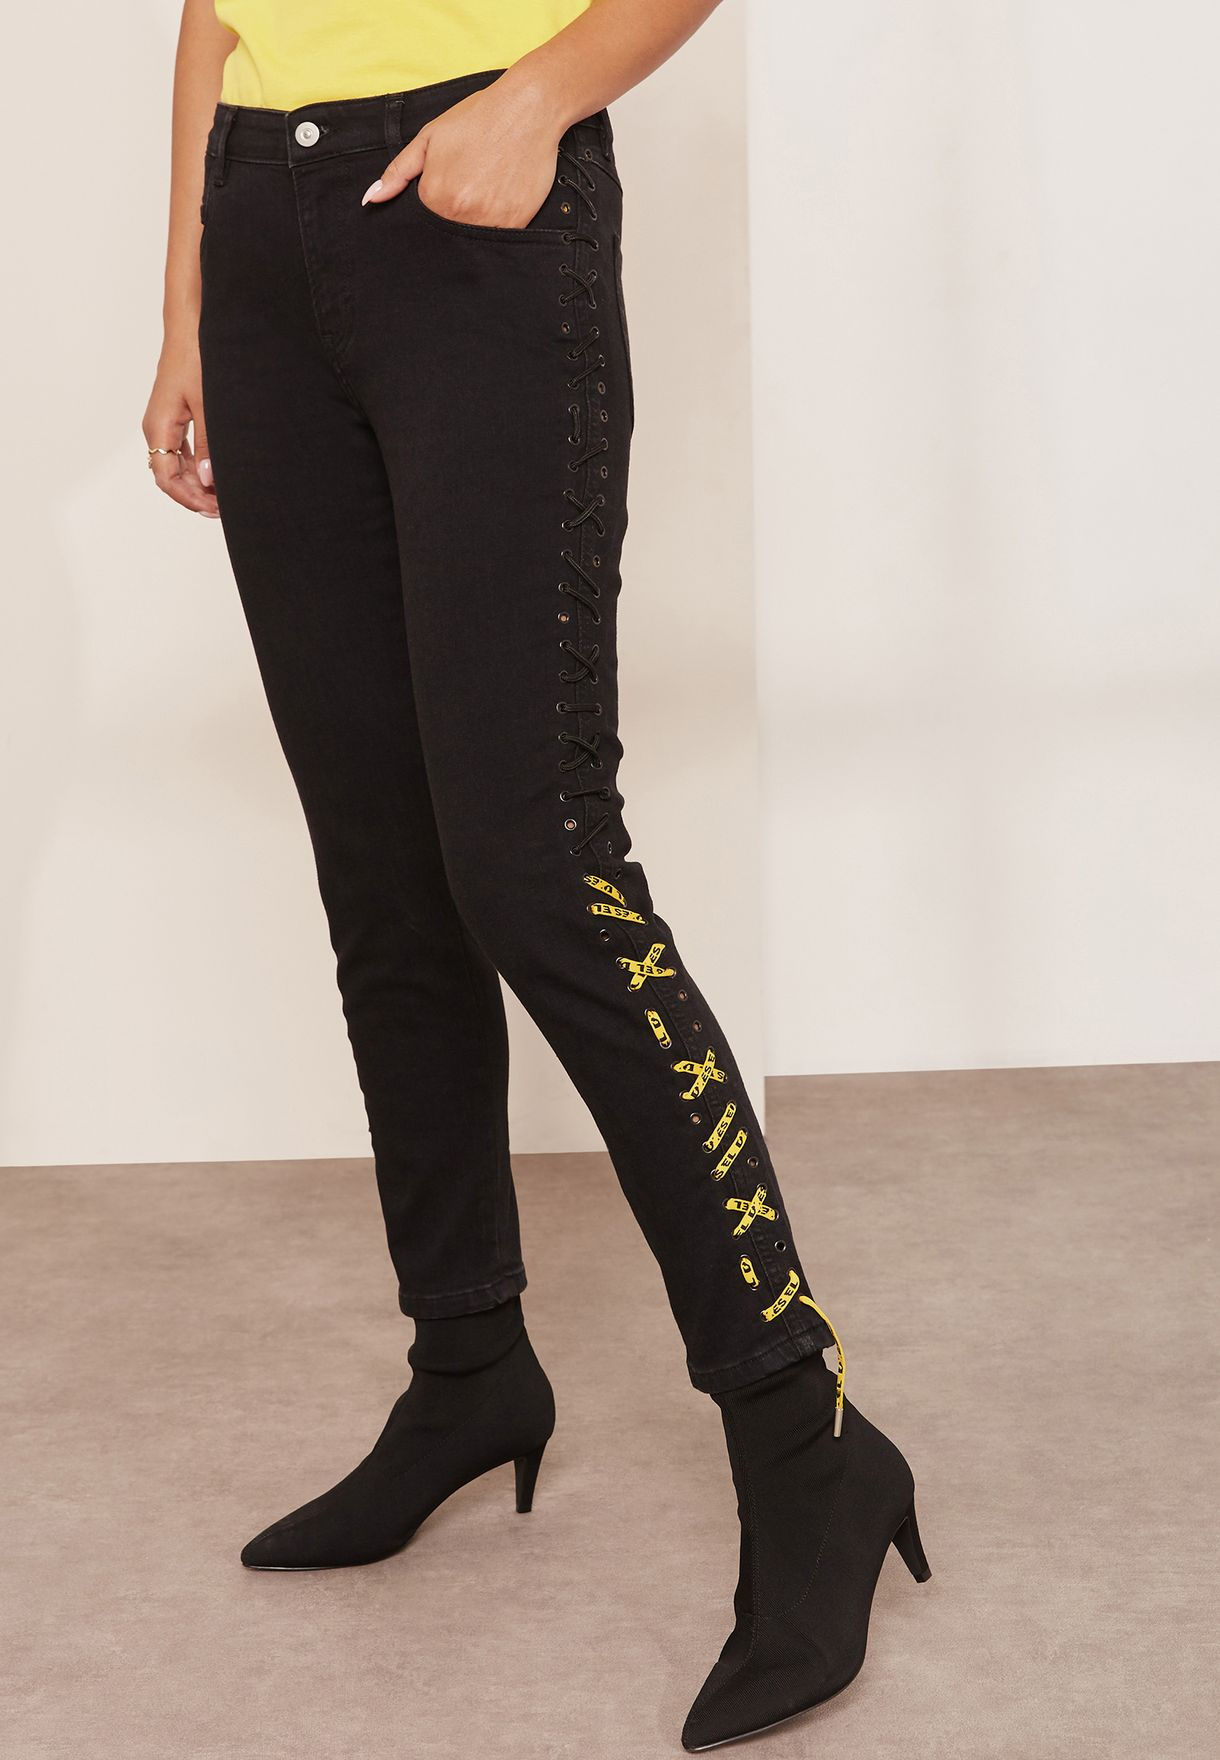 7e2e4320a Shop Diesel black Side Lace Up Skinny Jeans 00SH2F for Women in Saudi -  DI035AT88JOP